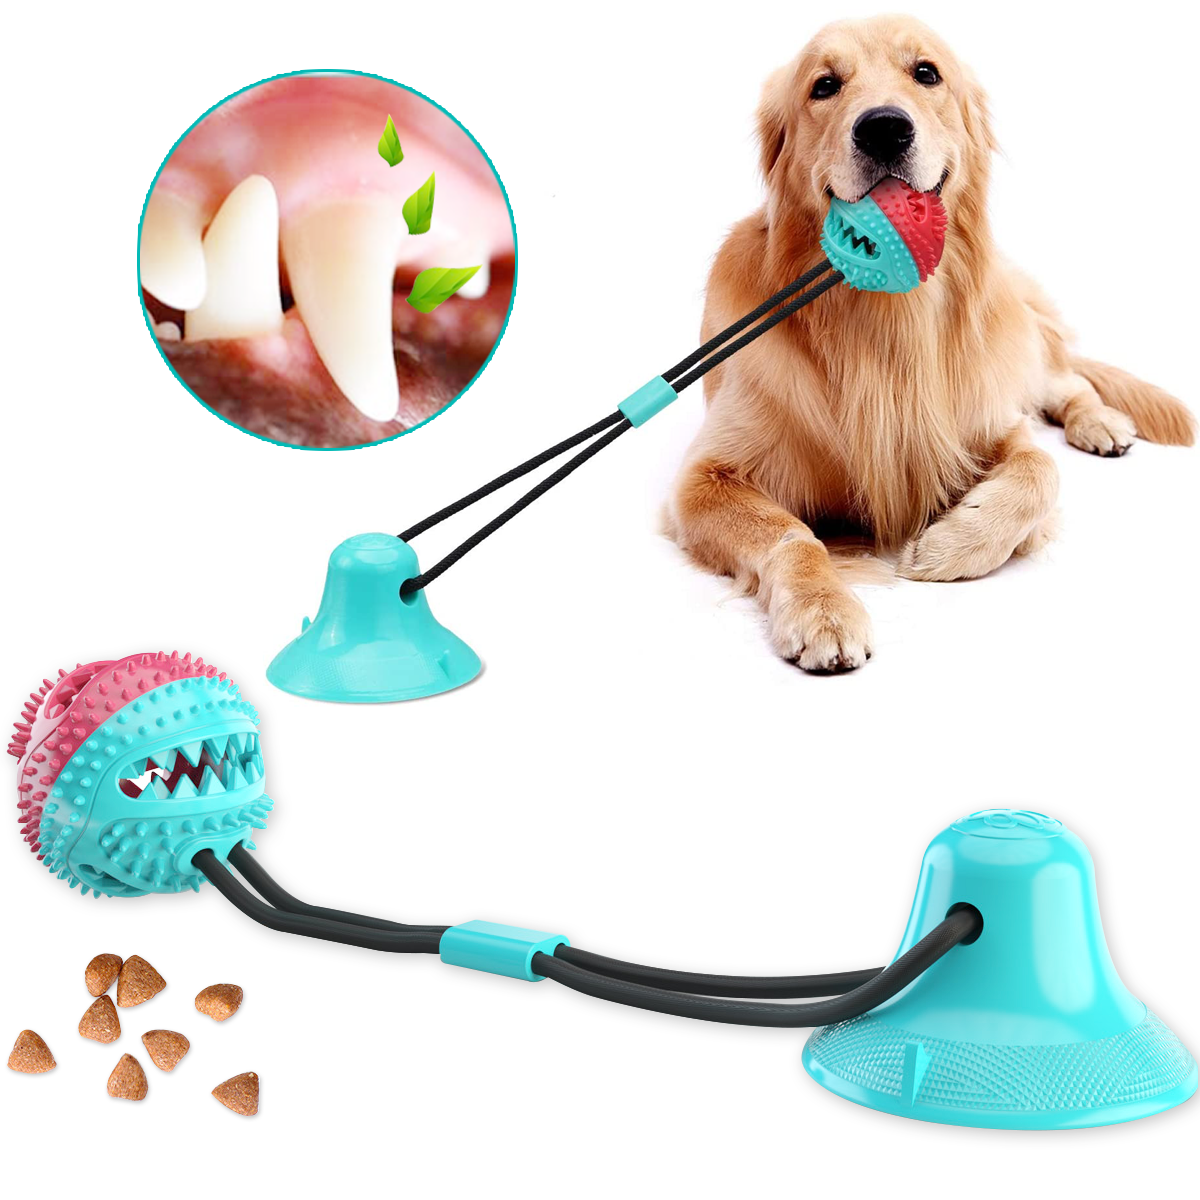 50% OFF Today- Dog Toy Ball